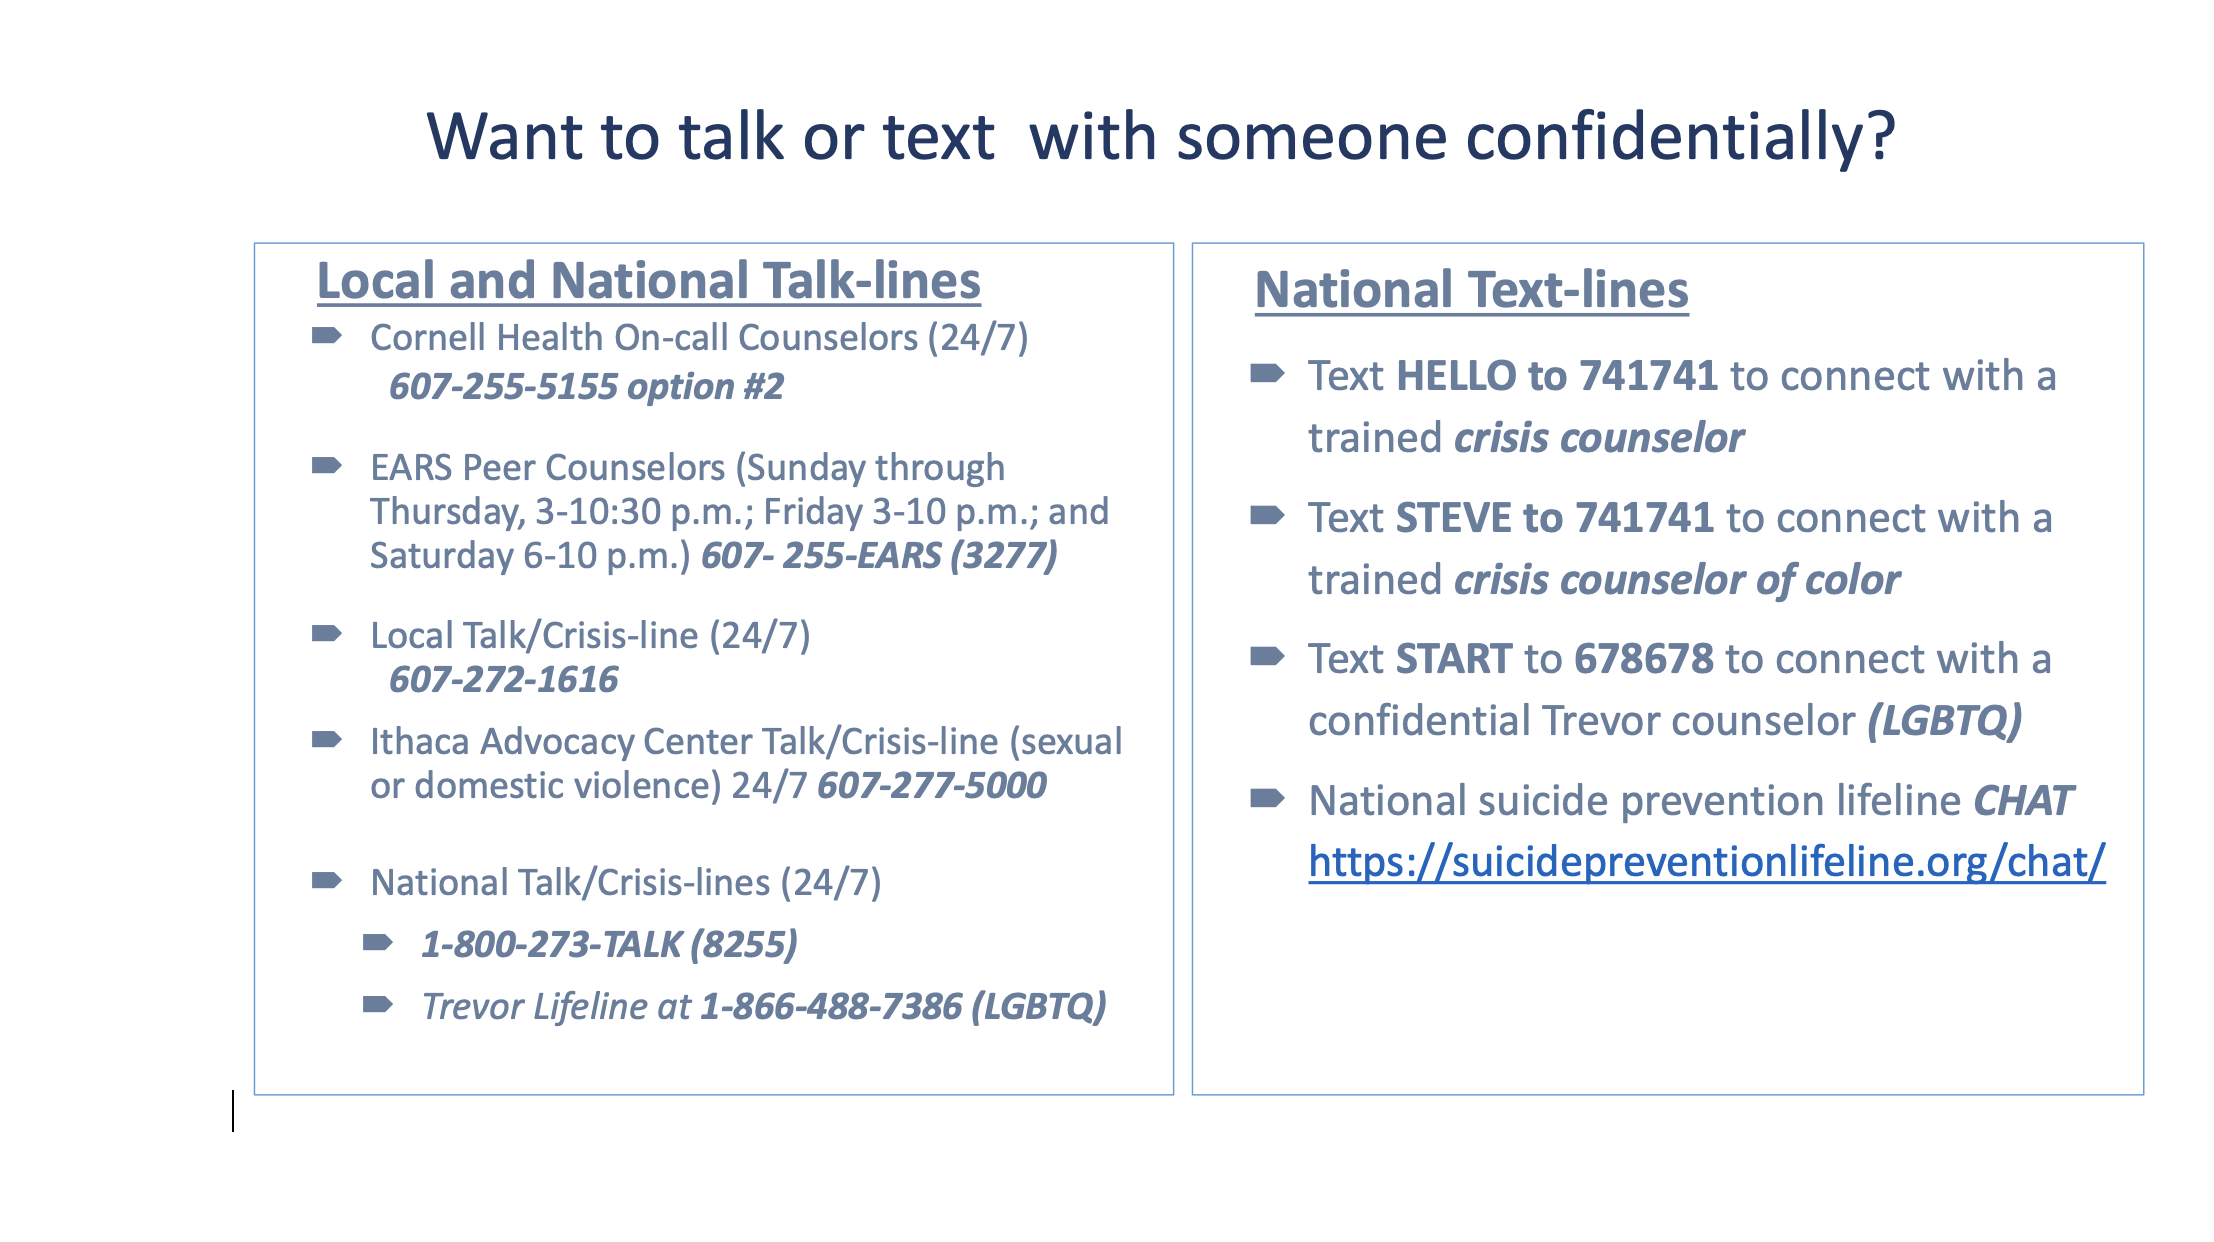 Confidentiality phone numbers